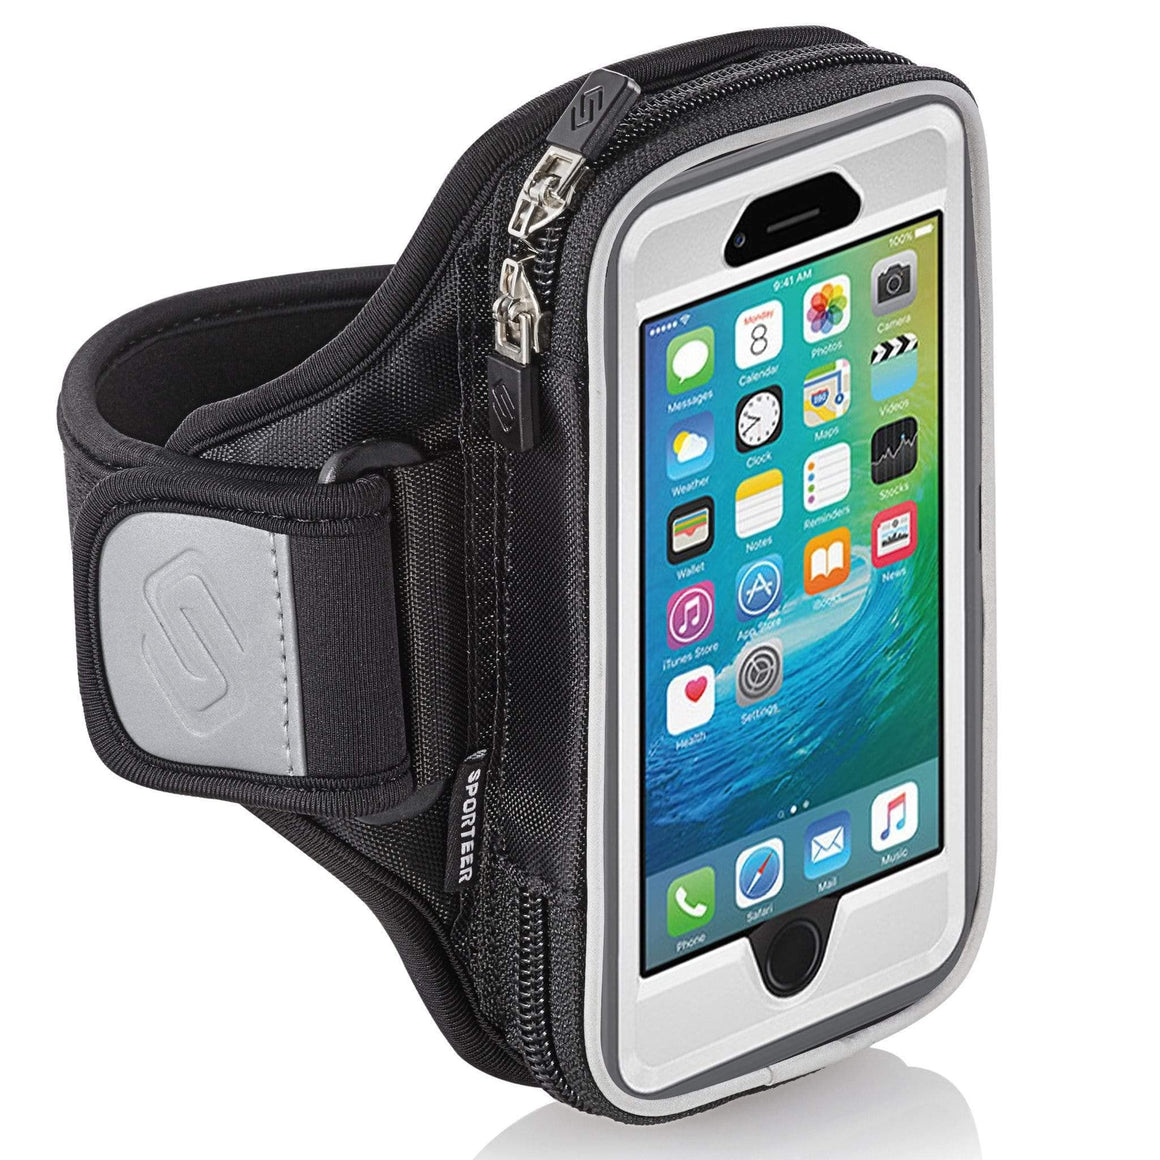 Sporteer Entropy E6 Modular Running Armband for Samsung Galaxy phones with Otterbox Case